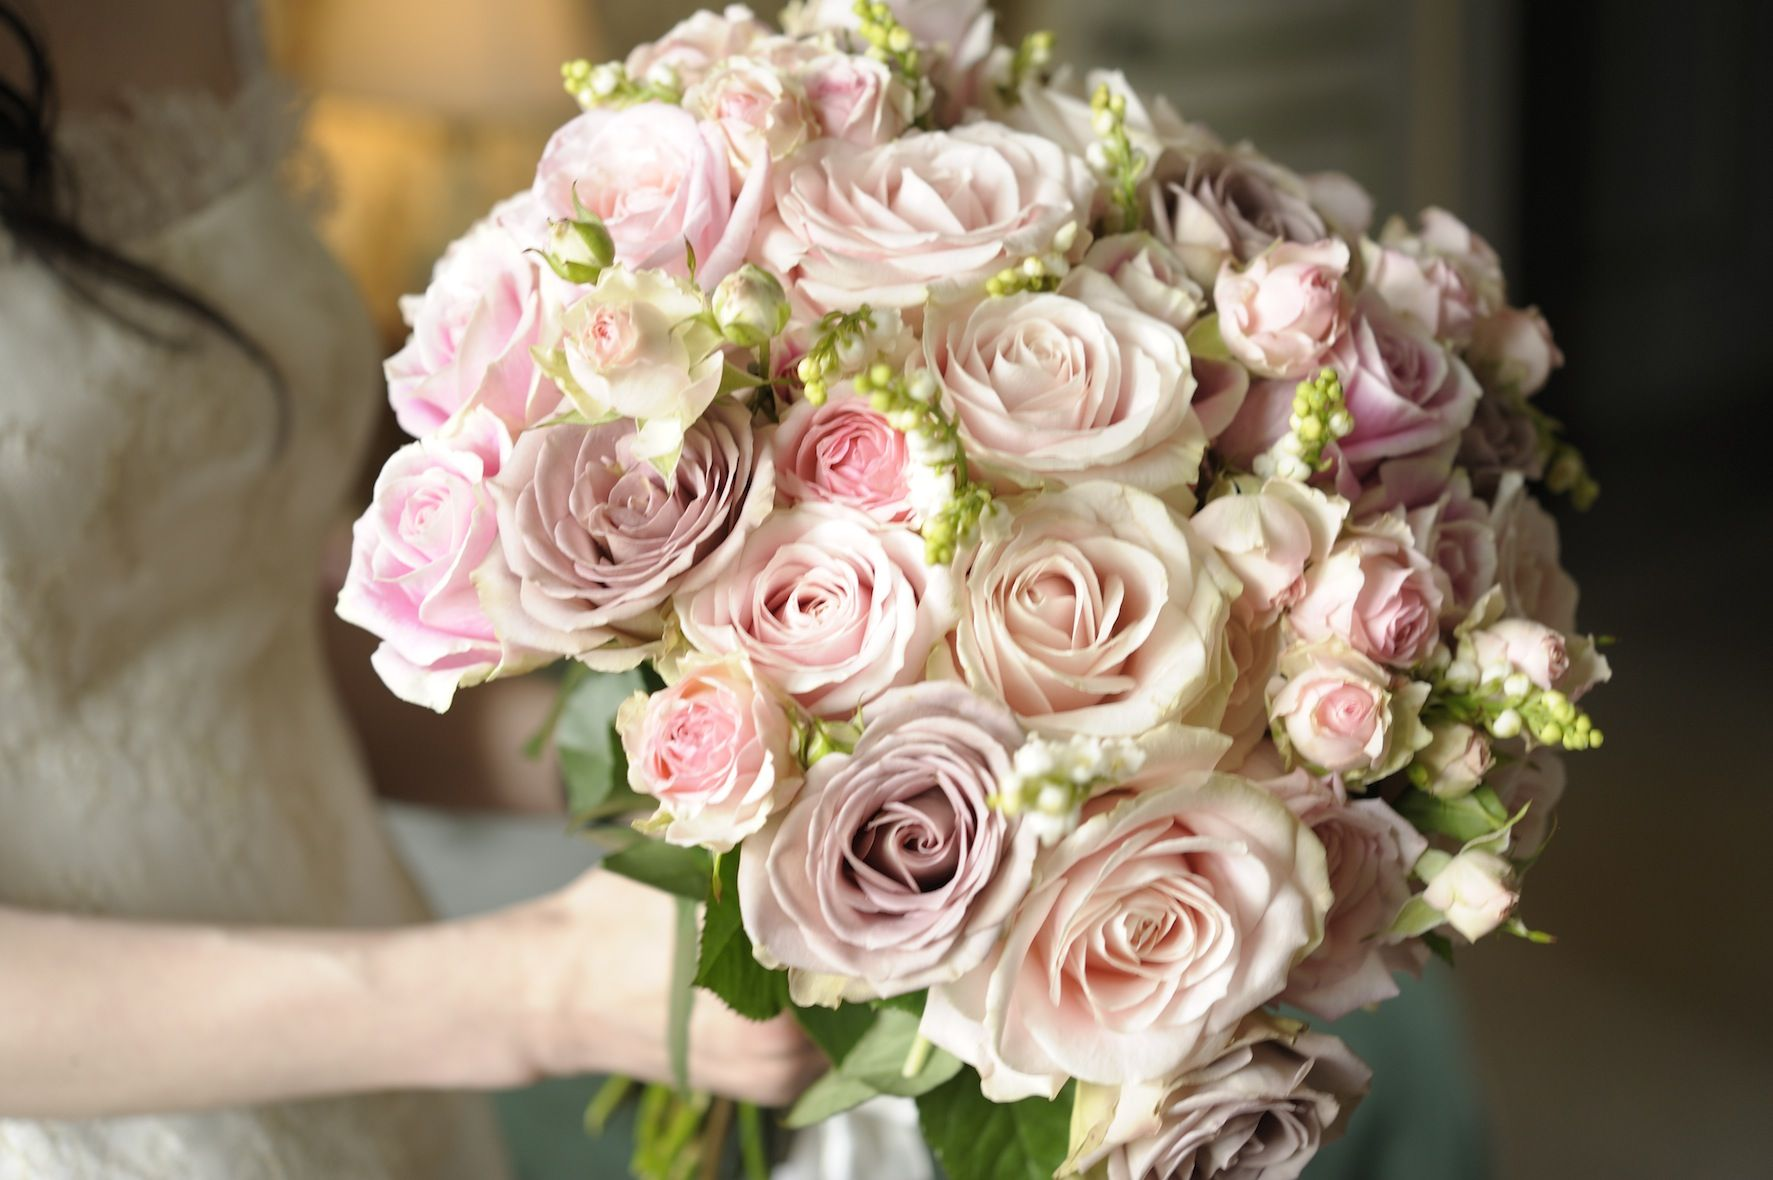 Dreamy Bridal Bouquet Showcasing White Lily Of The Valley Shell Pink Roses Lavender Vintage